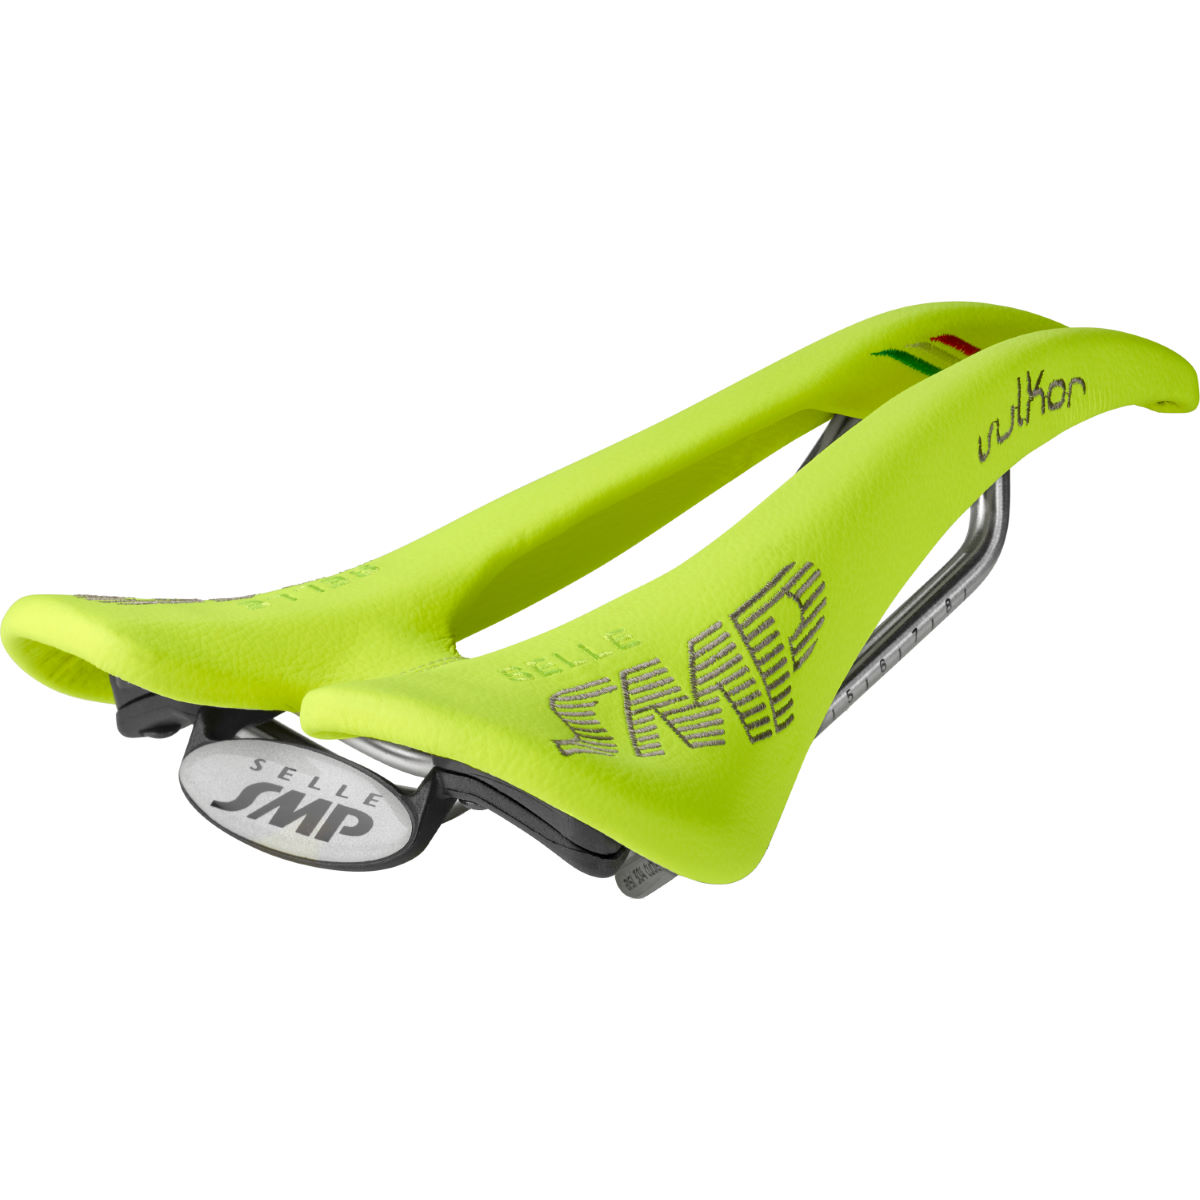 Selle Selle SMP Vulkor - 266 x 136mm Jaune fluo Selles